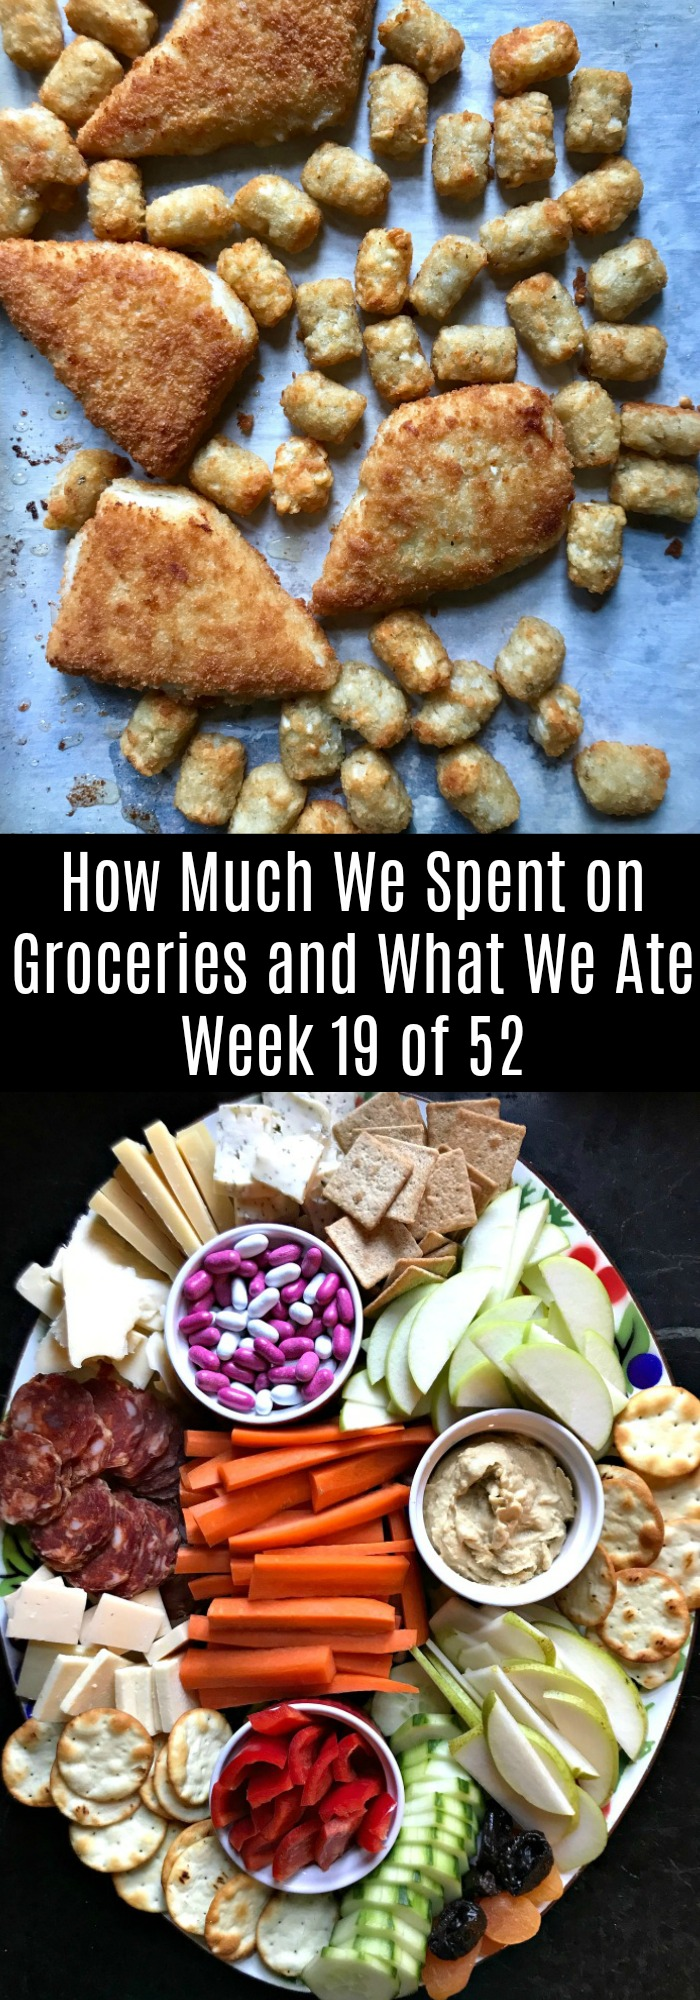 How Much We Spent on Groceries and What We Ate – Week 19 of 52